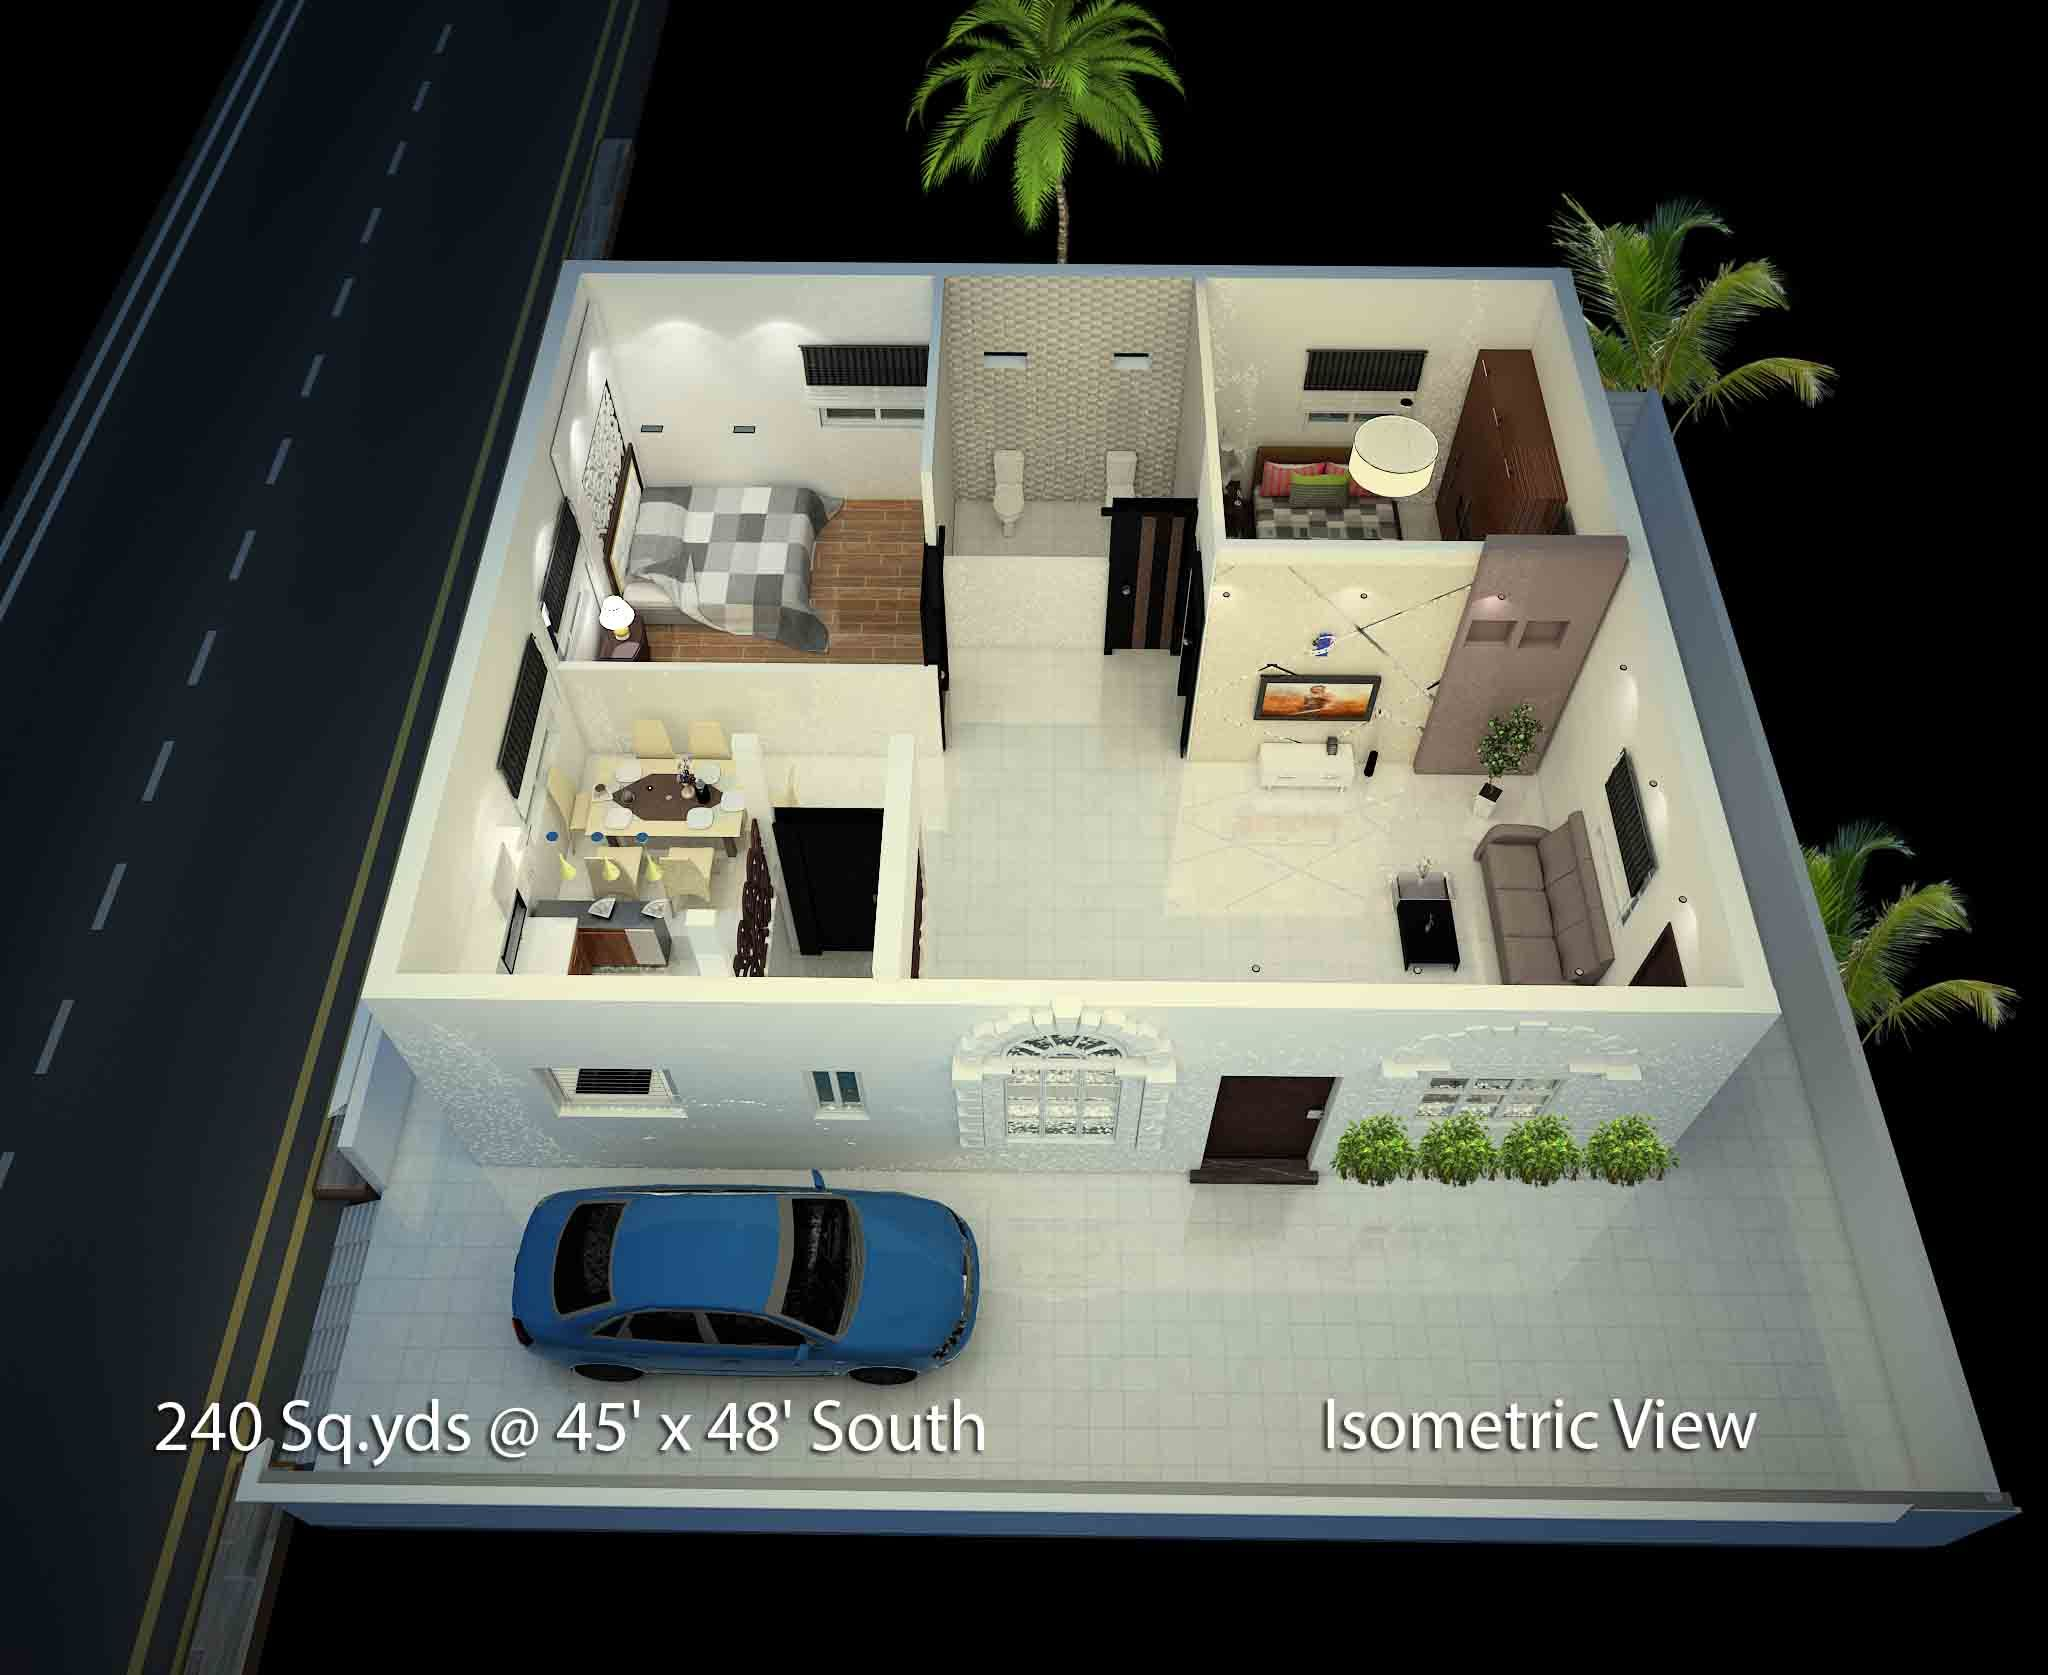 2 bhk home plan map of world.